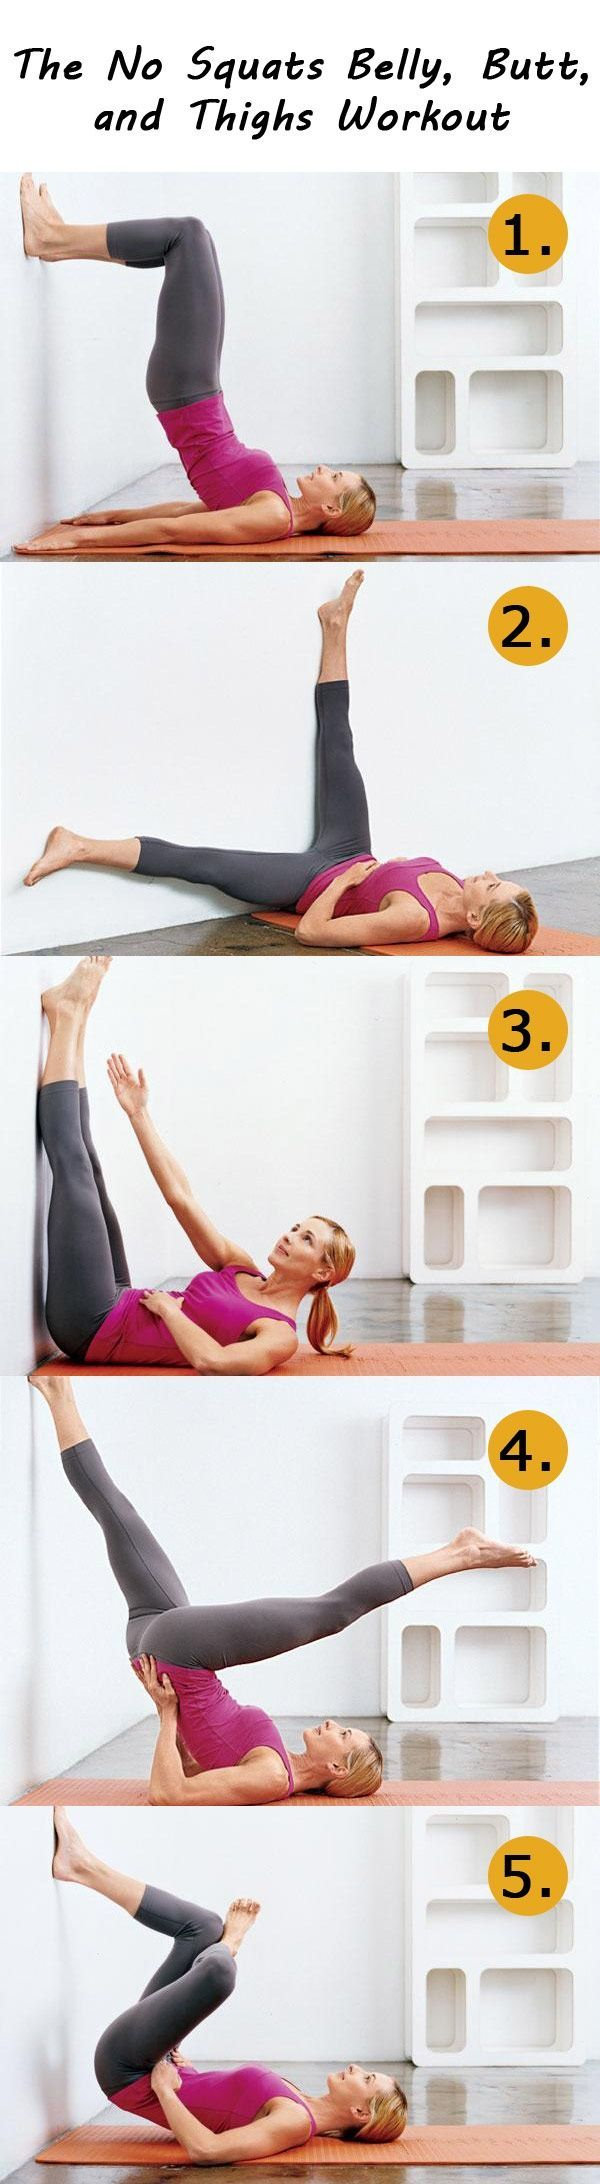 Exercise helps to make you look younger